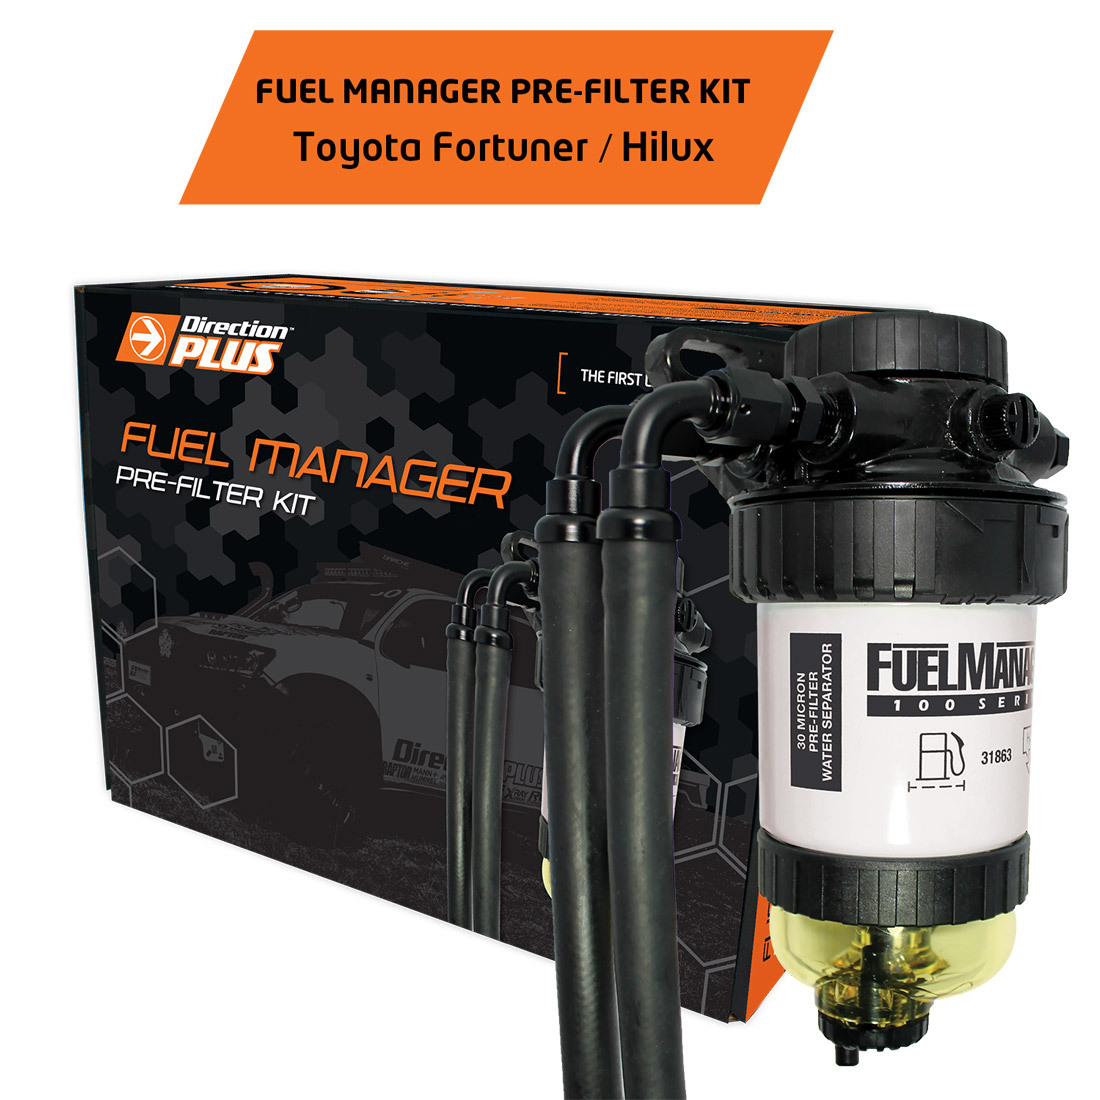 View Topic Secondary Fuel Filter Re Filters Diesel But It Looks Like Its Similar To The Pre 16s A Bracket That Replaces Original For Factory See Here Reference